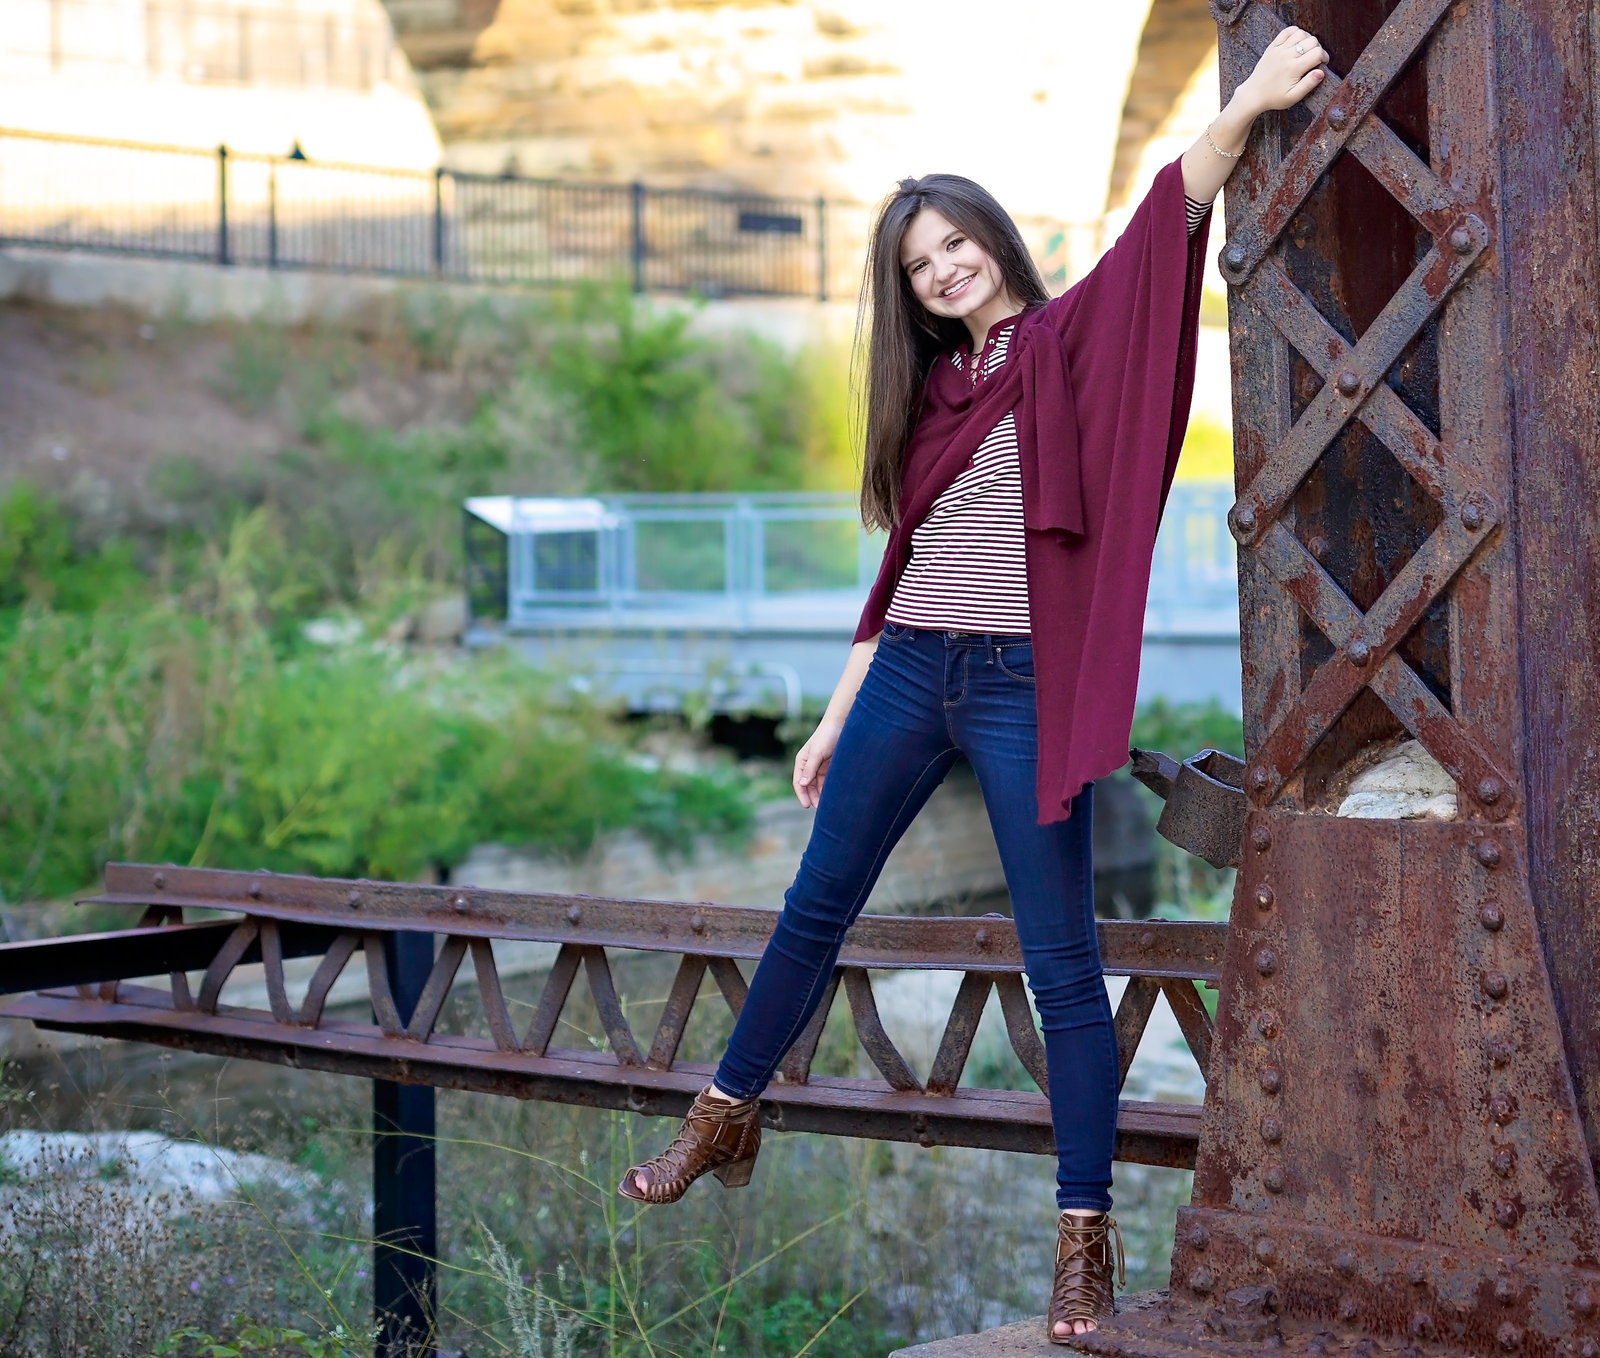 Senior Portrait of girl hanging on to rusty post